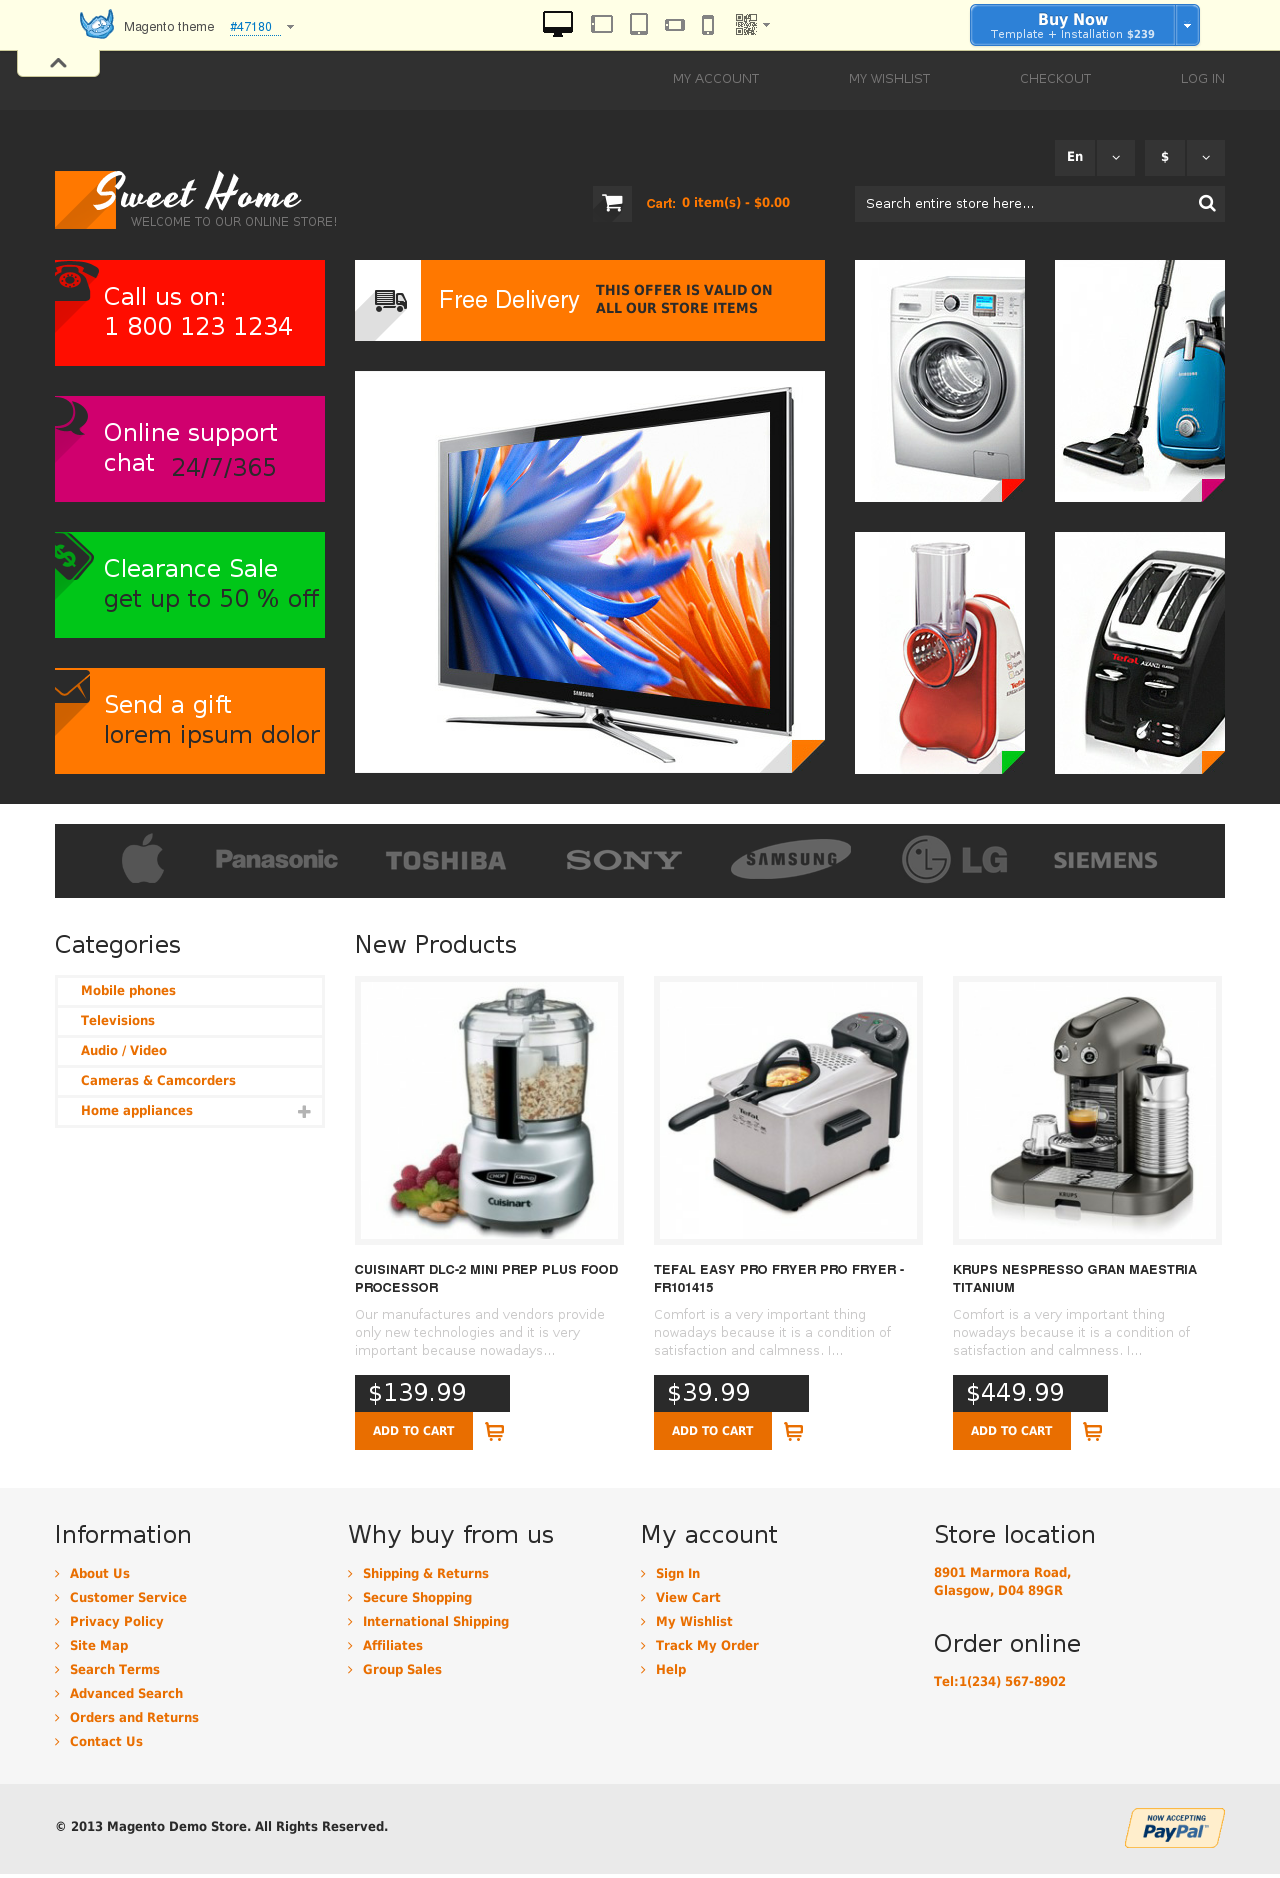 Sweet Home Magento Theme #47180